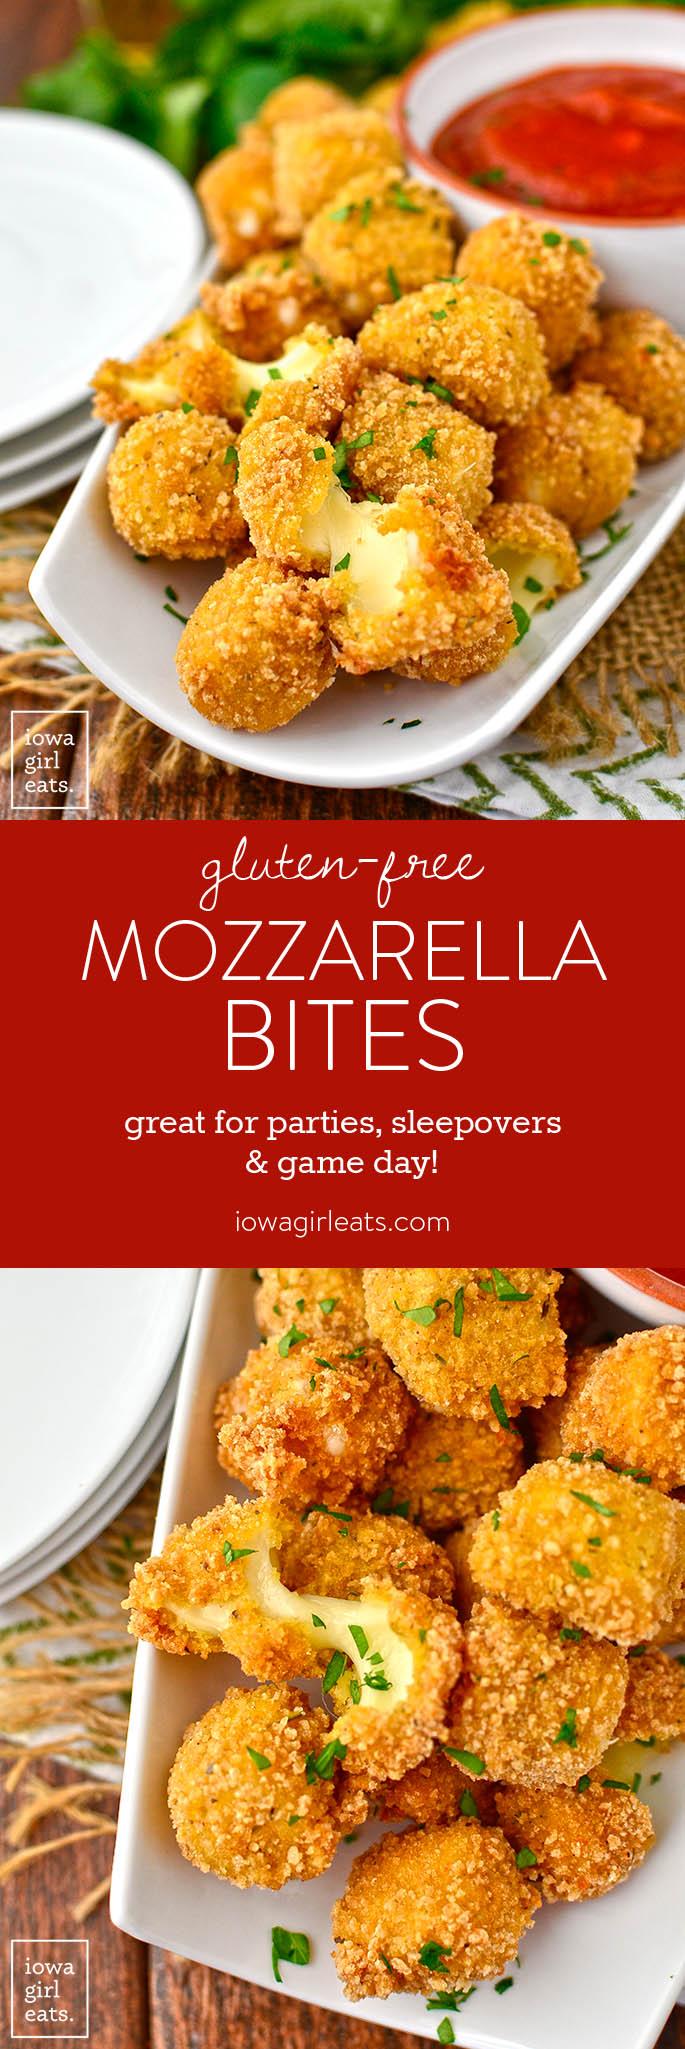 Gluten-Free Mozzarella Bites are easy to whip up at home. These crispy, ooey-gooey bites are great for game day, kids' sleepovers, or anytime you're craving a cheesy treat! | iowagirleats.com